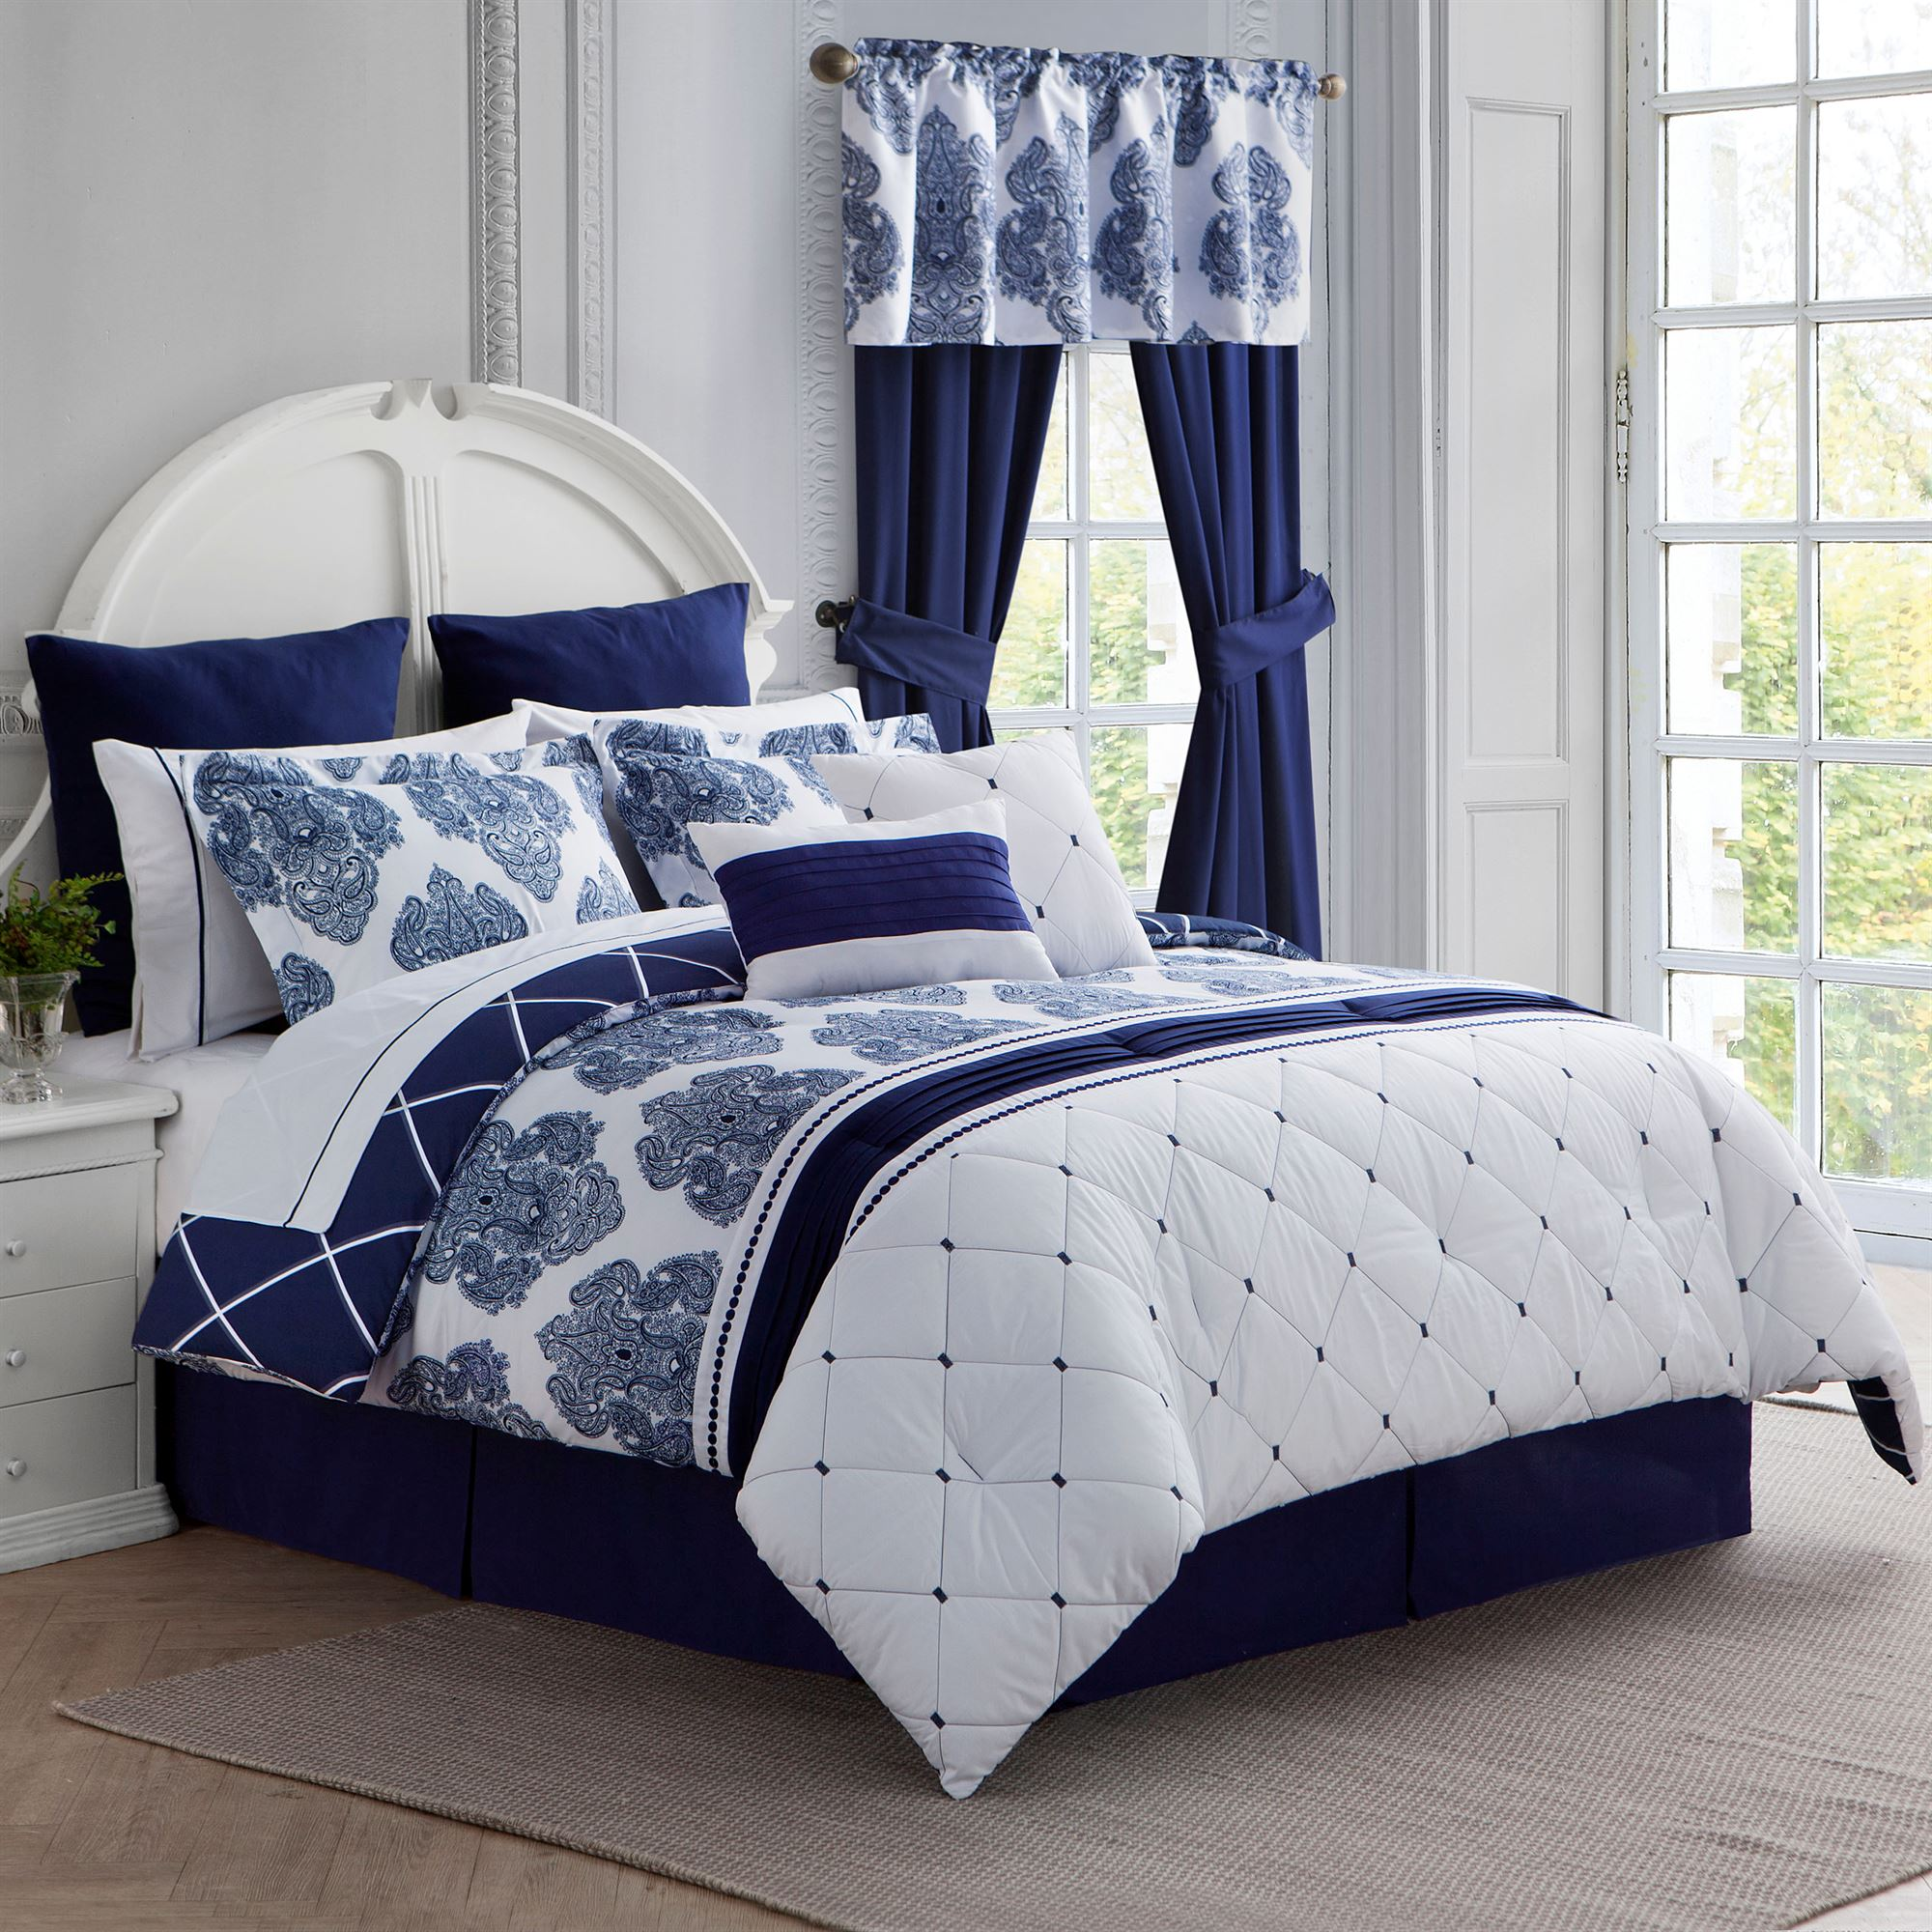 Calecca Indigo Blue Bed in a Bag pc forter Set